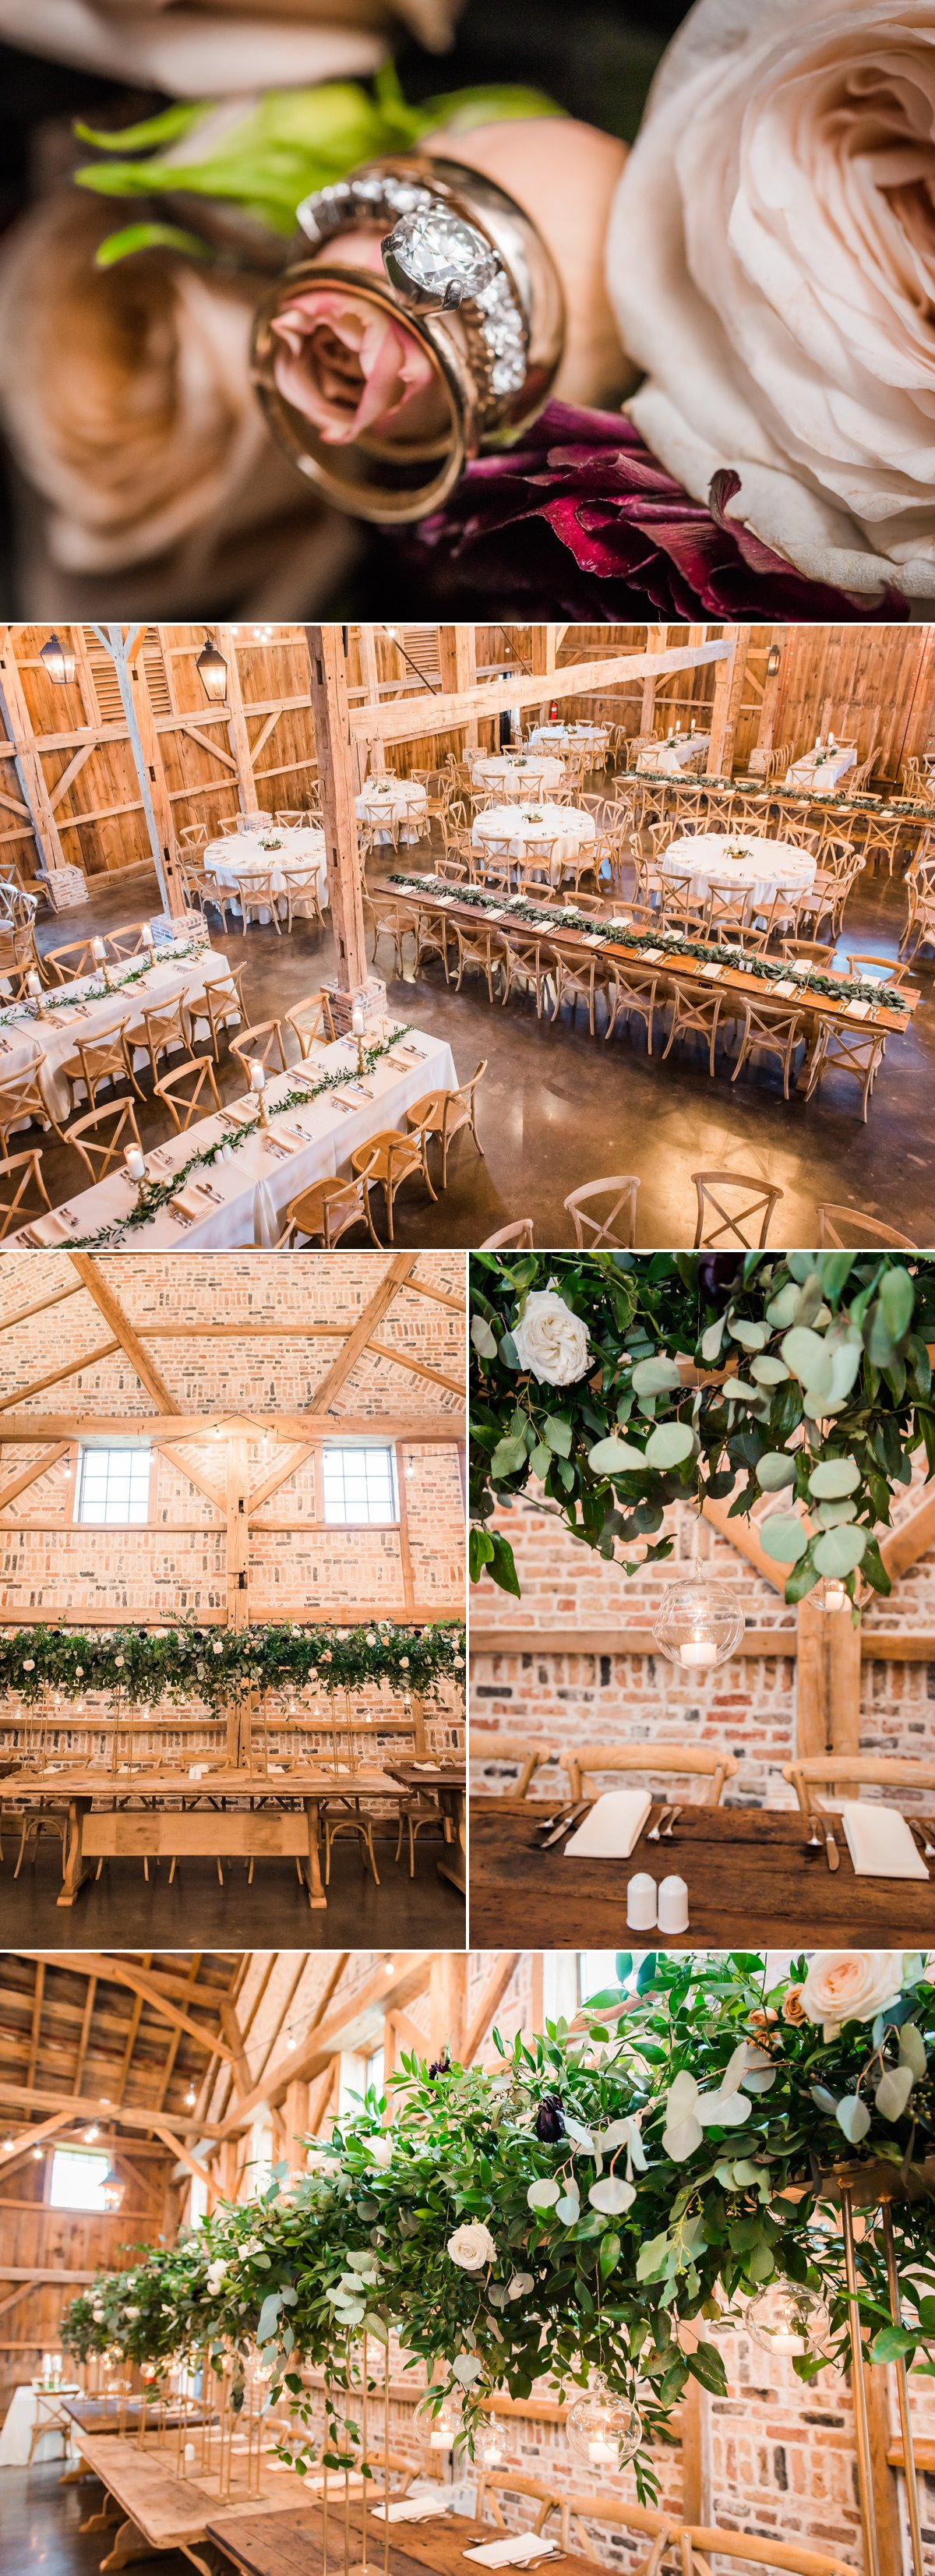 Beckendorff Farms Wedding Party Hall